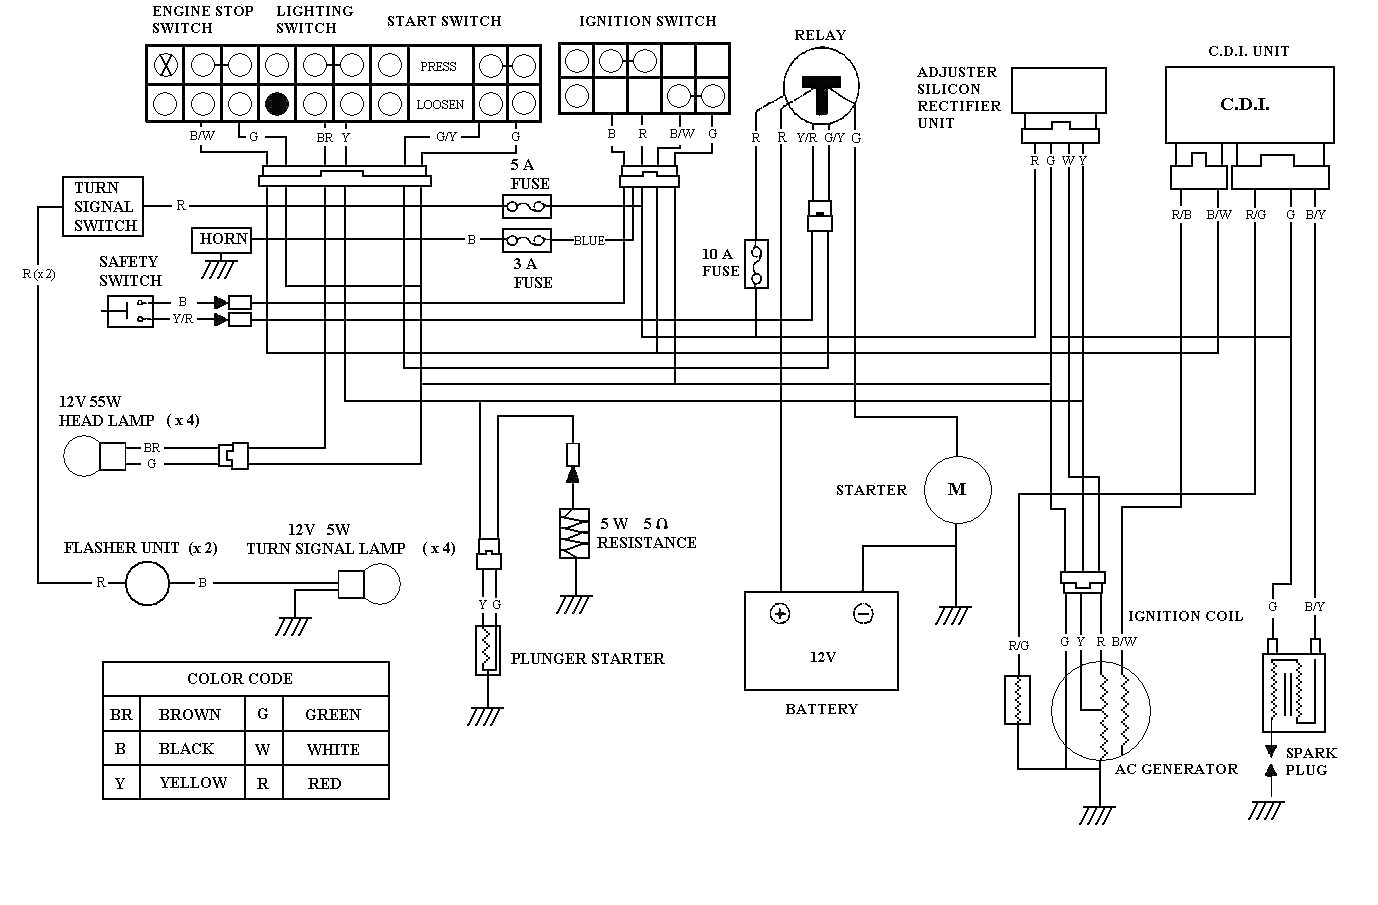 wiring diagram for 150cc scooter 1981 jeep cj ice bear trike all data maddog library xtreme atemberaubend mad dog gy6 schaltplan bilder elektrische